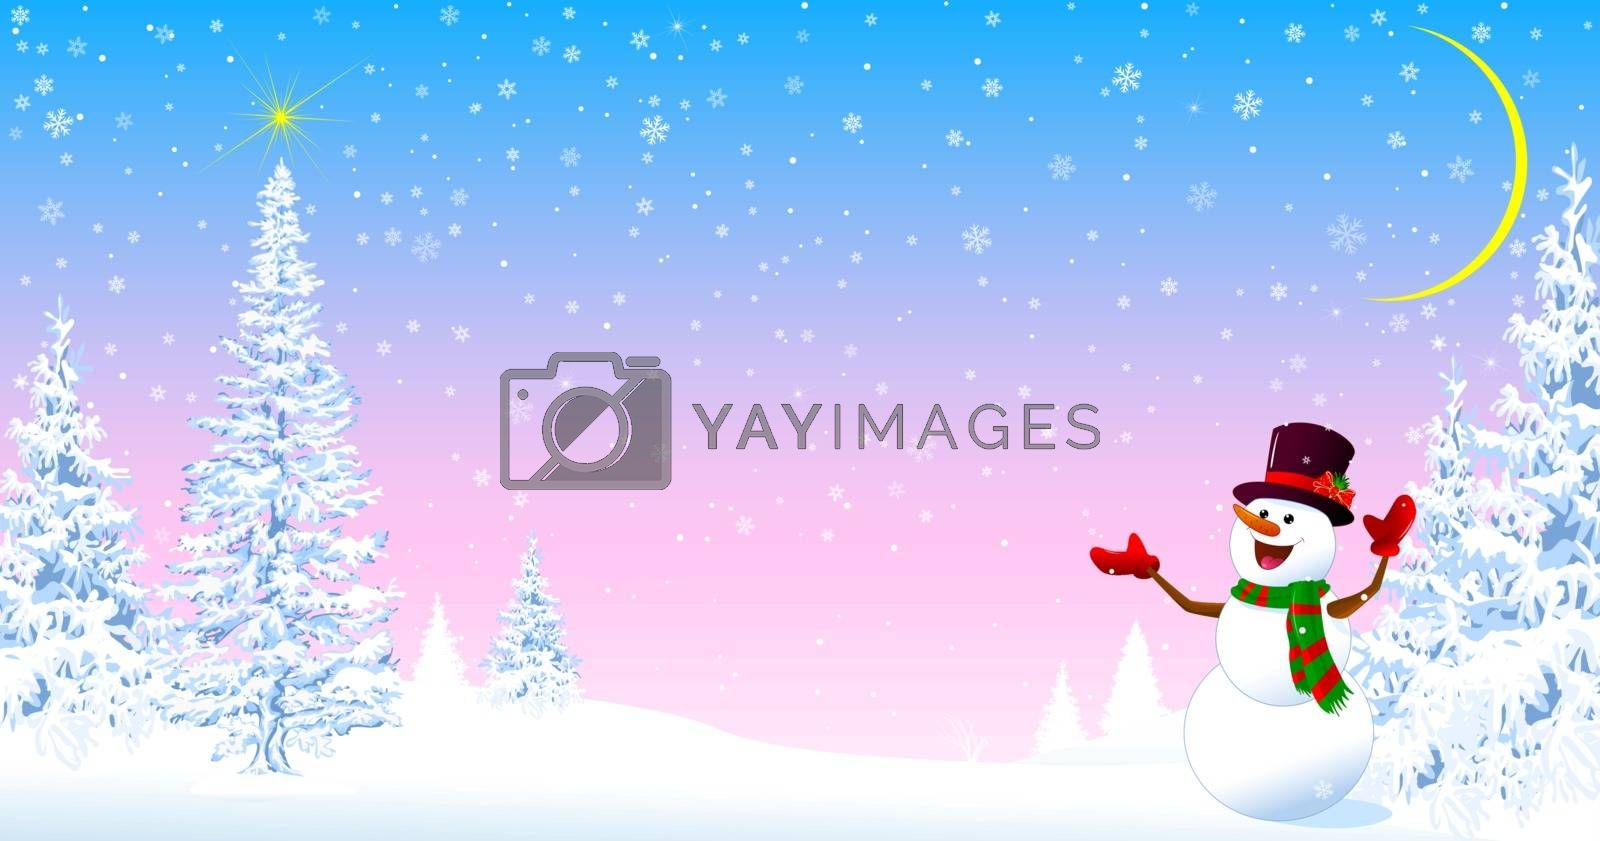 Snowman in a hat welcomes. Christmas tree. Star in the sky. Snowy forest. Snowman on the background of fir trees and snowflakes.